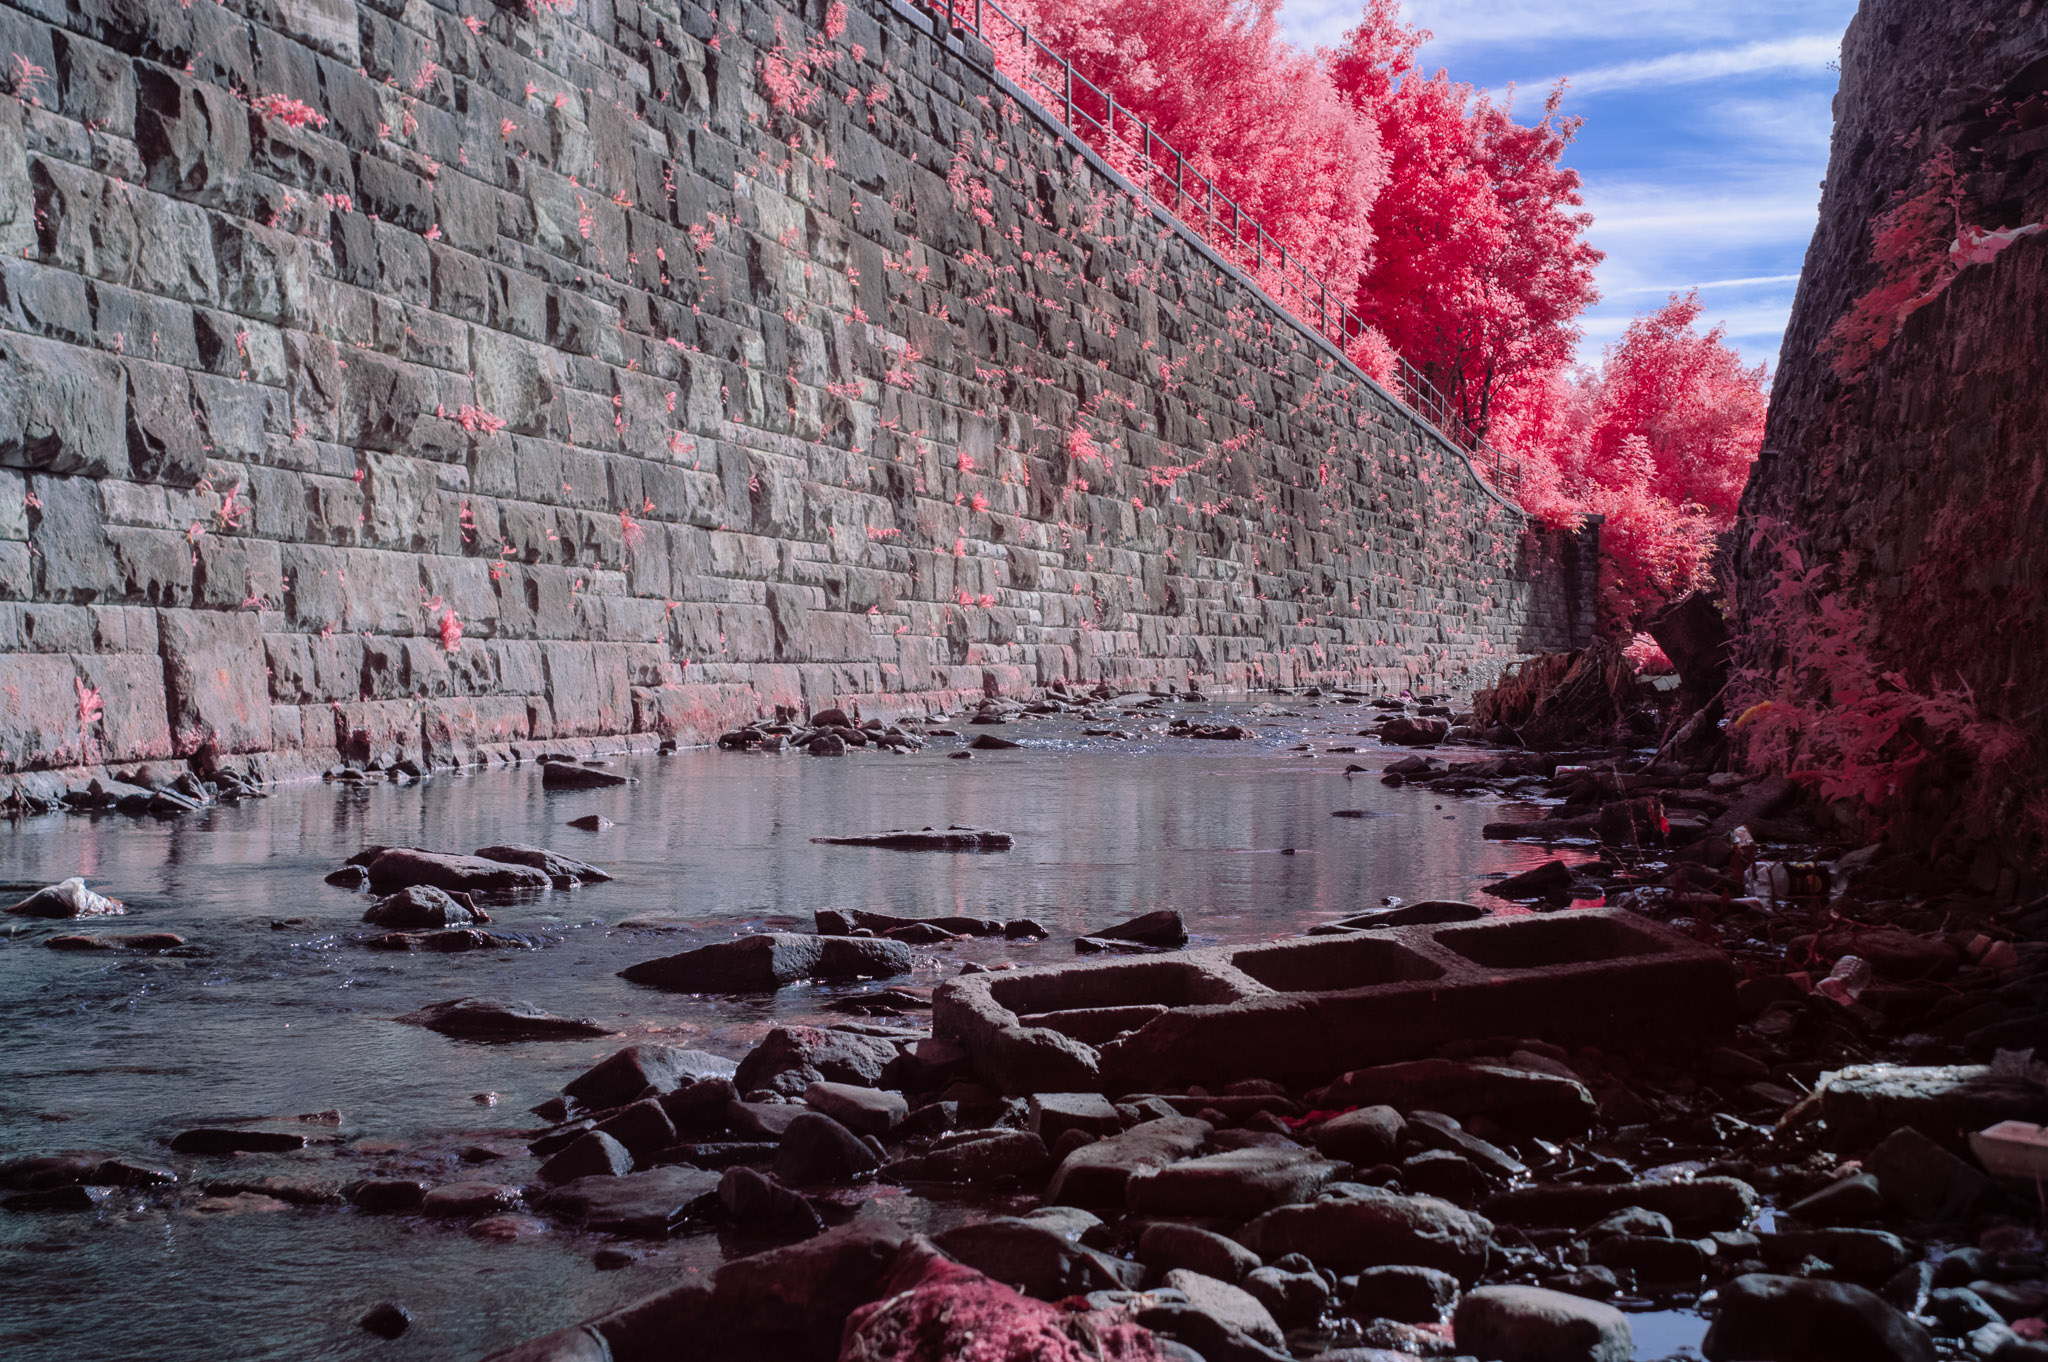 Kodak EIR Colour Infrared, Edgelands, Wasteland, Out of sight, River, Construction Blocks ©Jonny Sutton